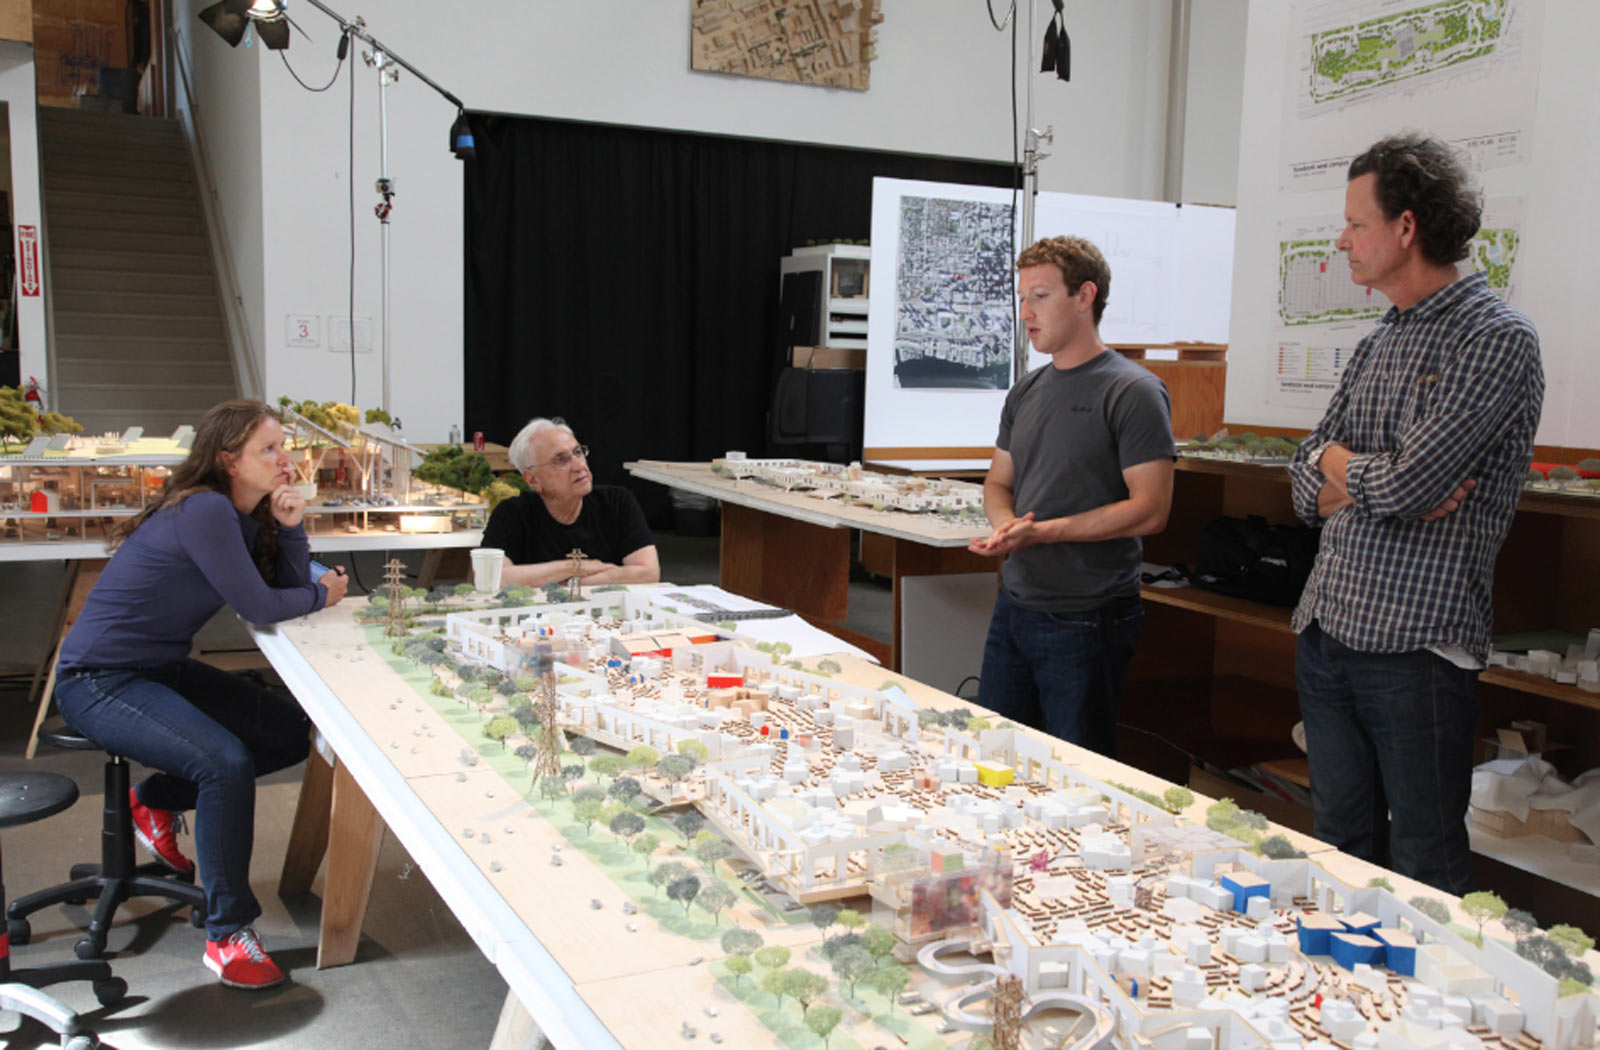 Facebook 39 S New Menlo Park Campus To Be Designed By Frank Gehry